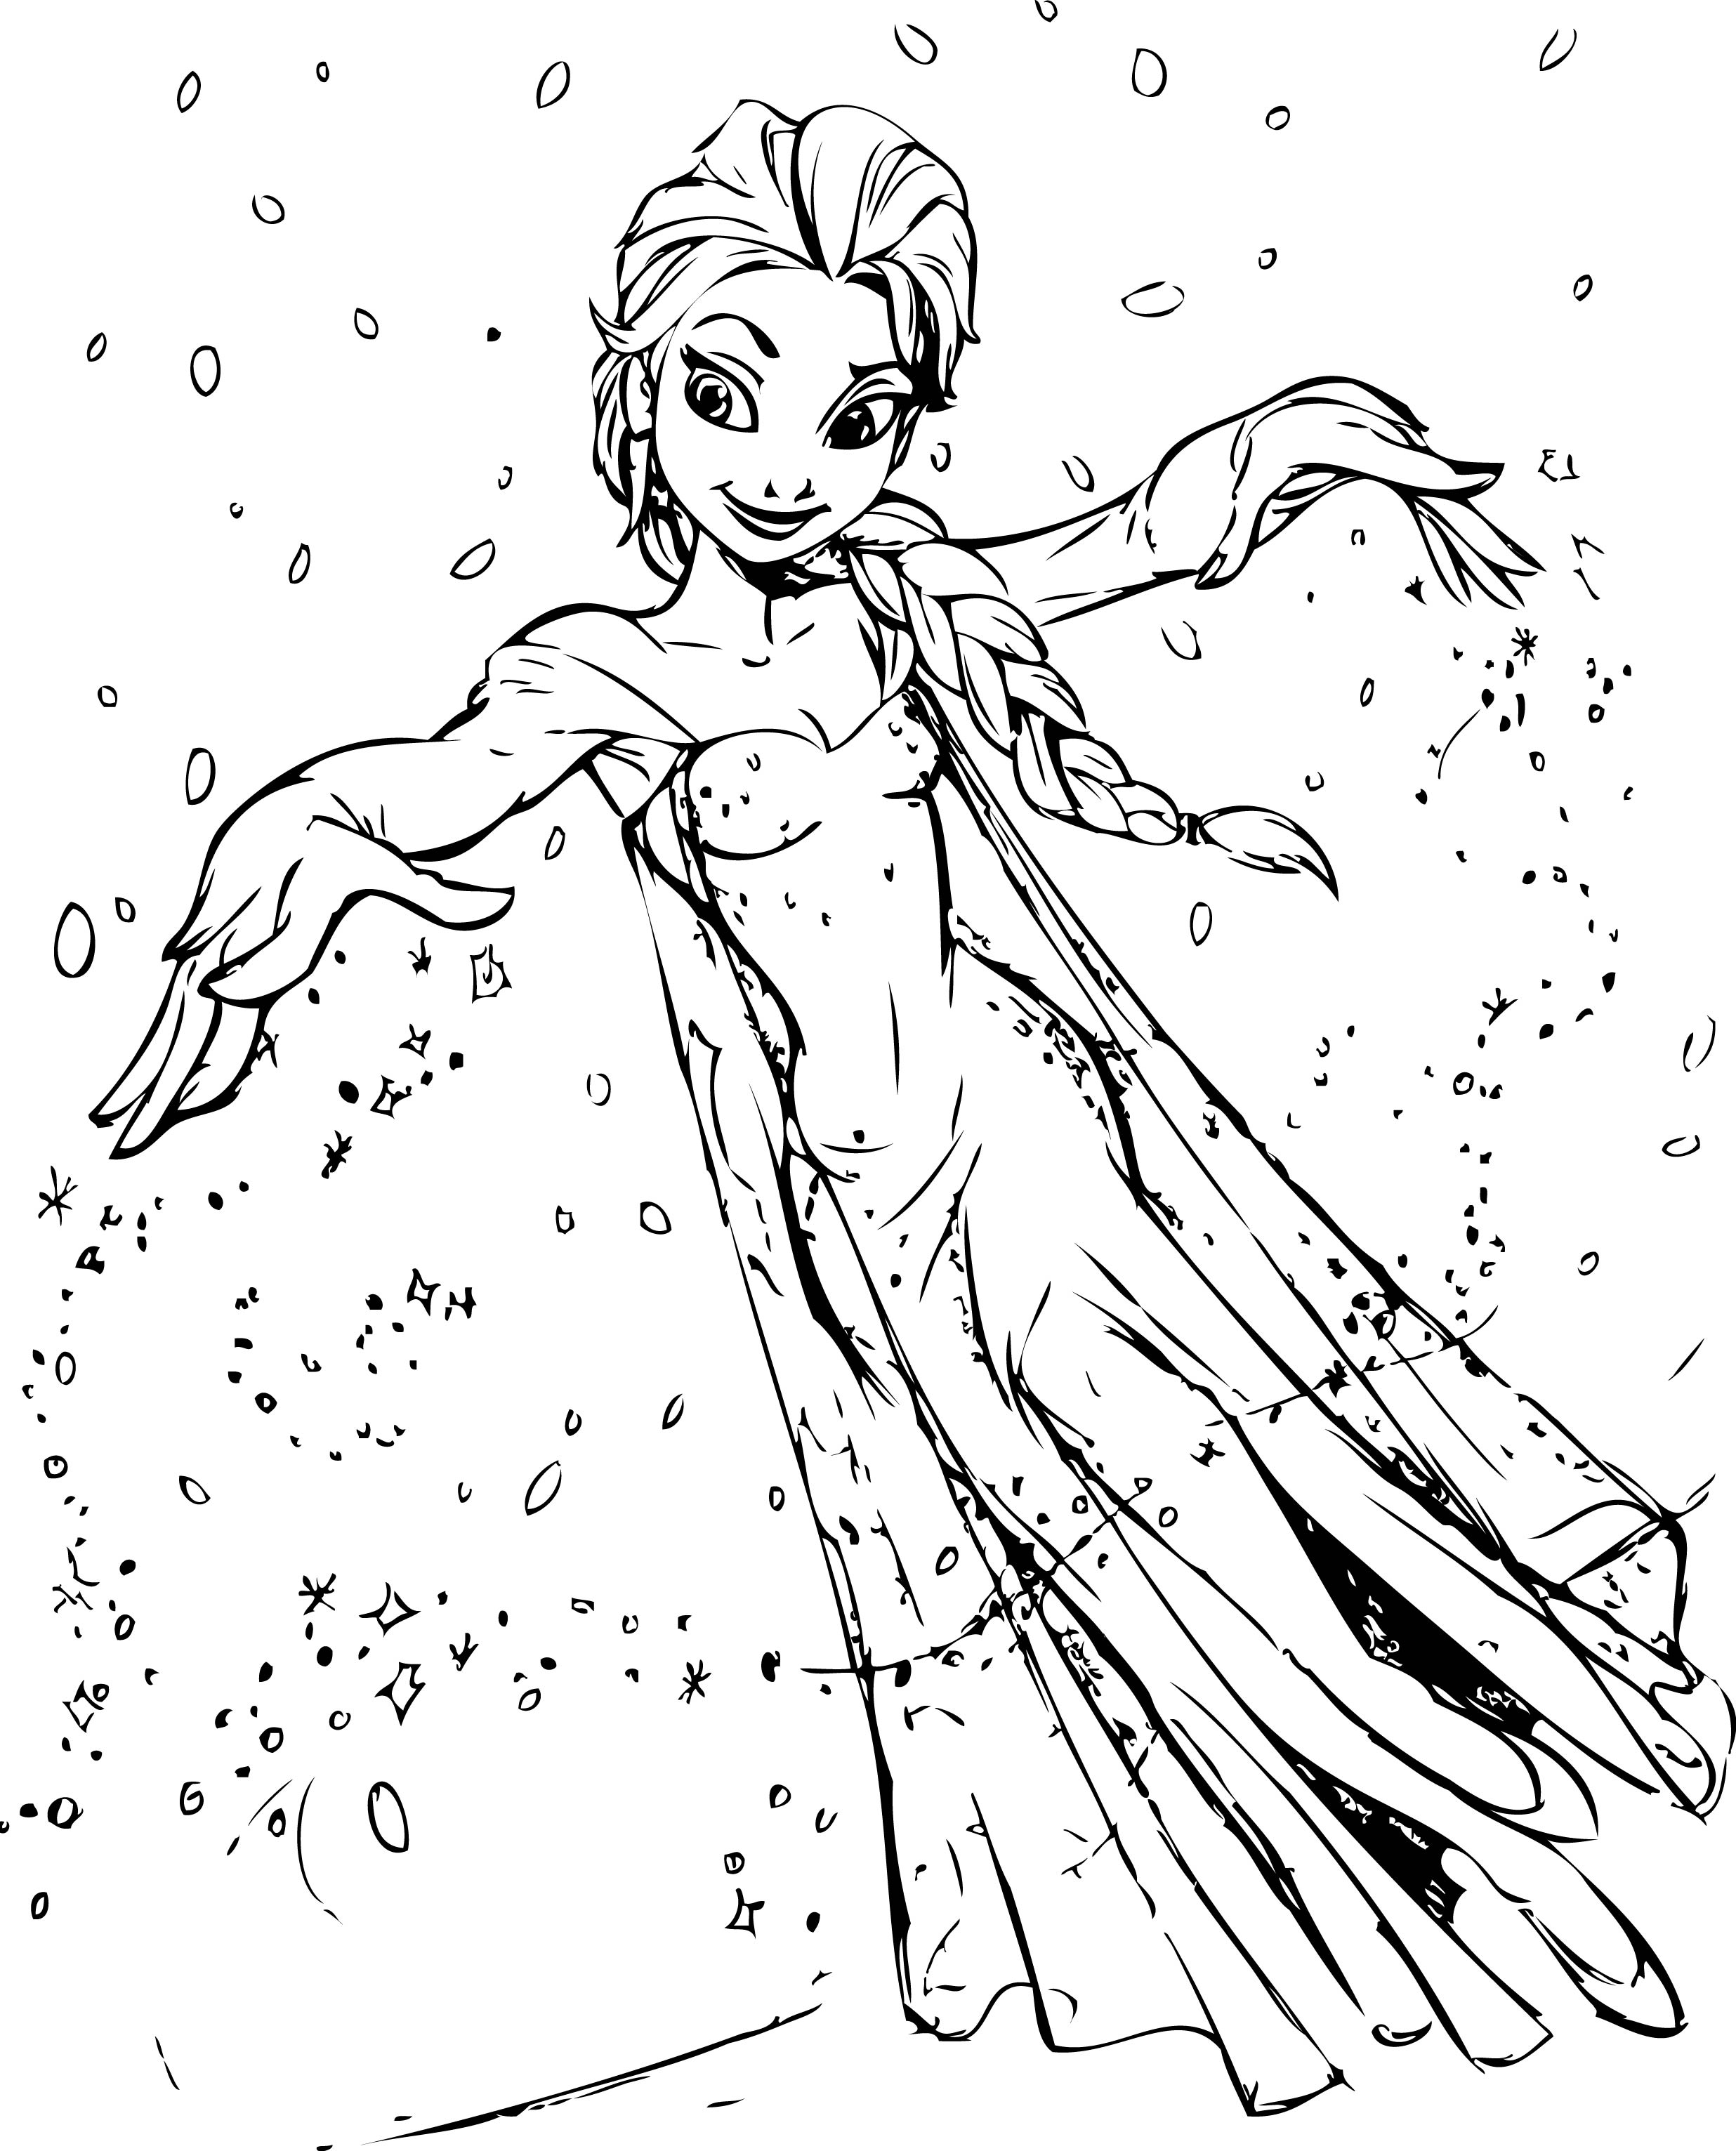 coloring sheets elsa and anna frozen elsa and anna coloring pages at getdrawings free and anna elsa sheets coloring